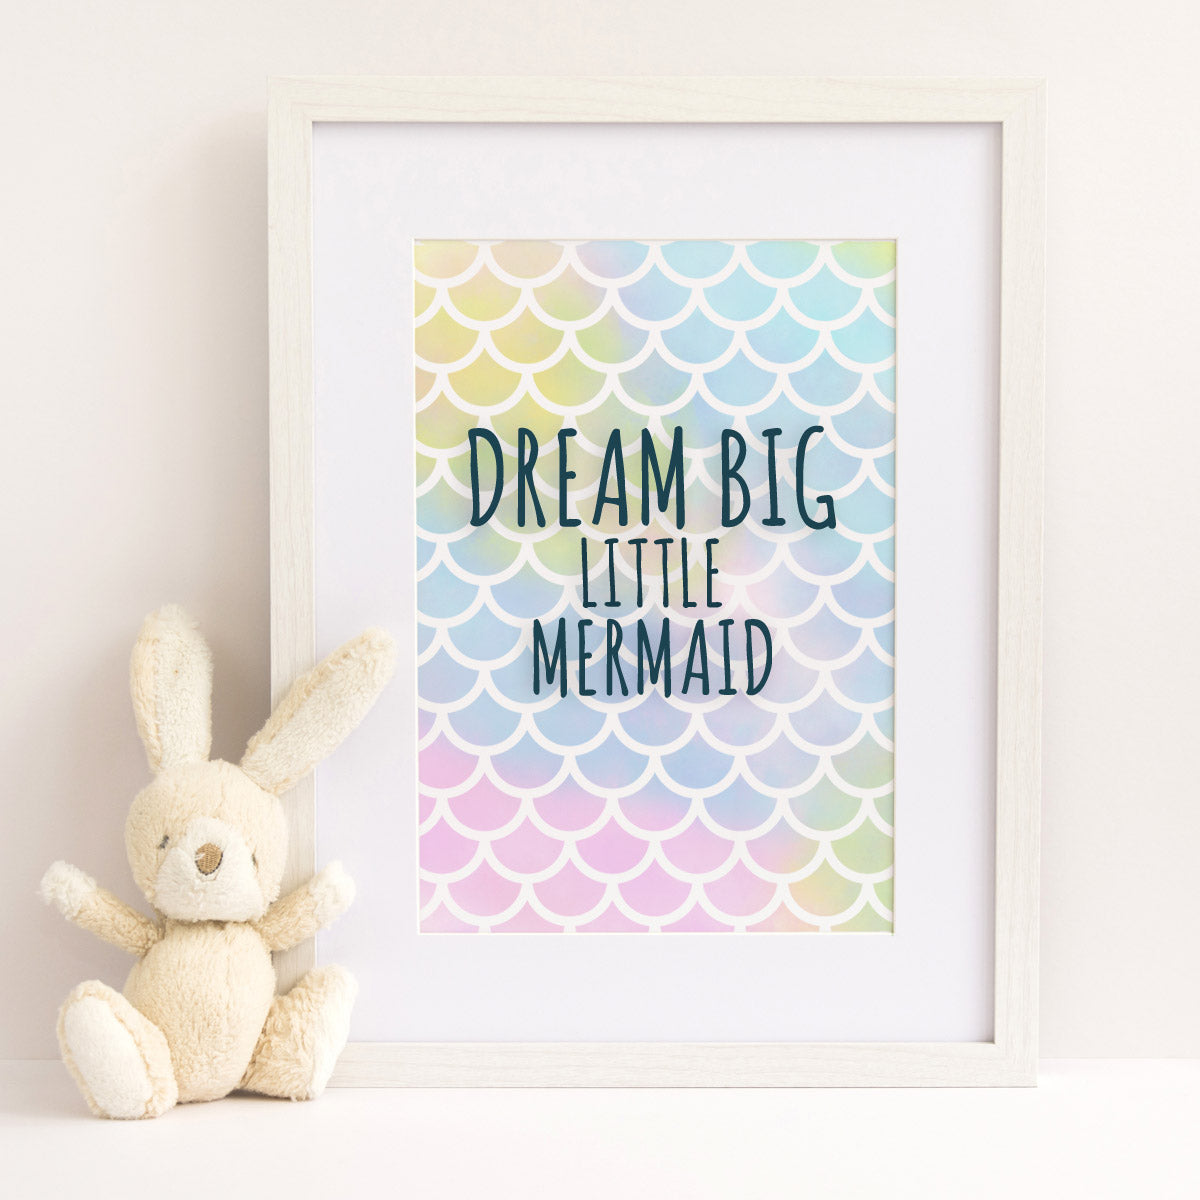 Craftstar Mermaid Scales Stencil Framed Picture